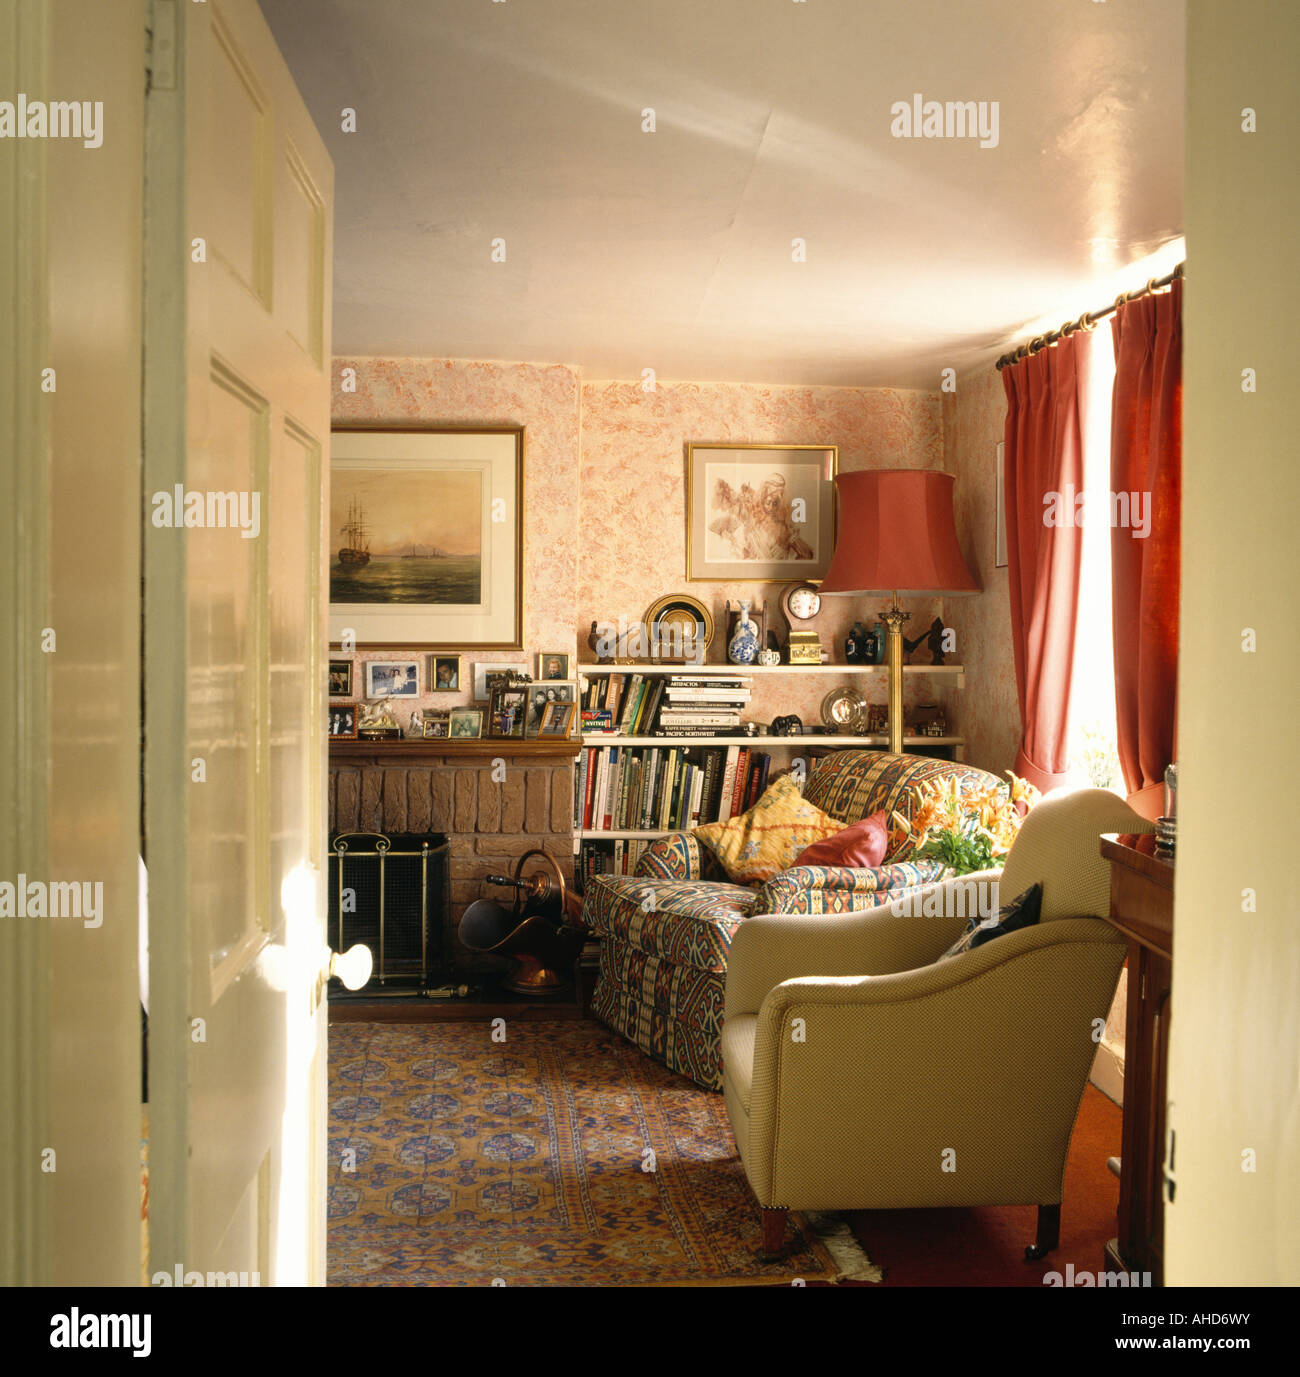 Door Open To Old Fashioned Living Room With Patterned Carpet And Wallpaper  And Cream Armchair